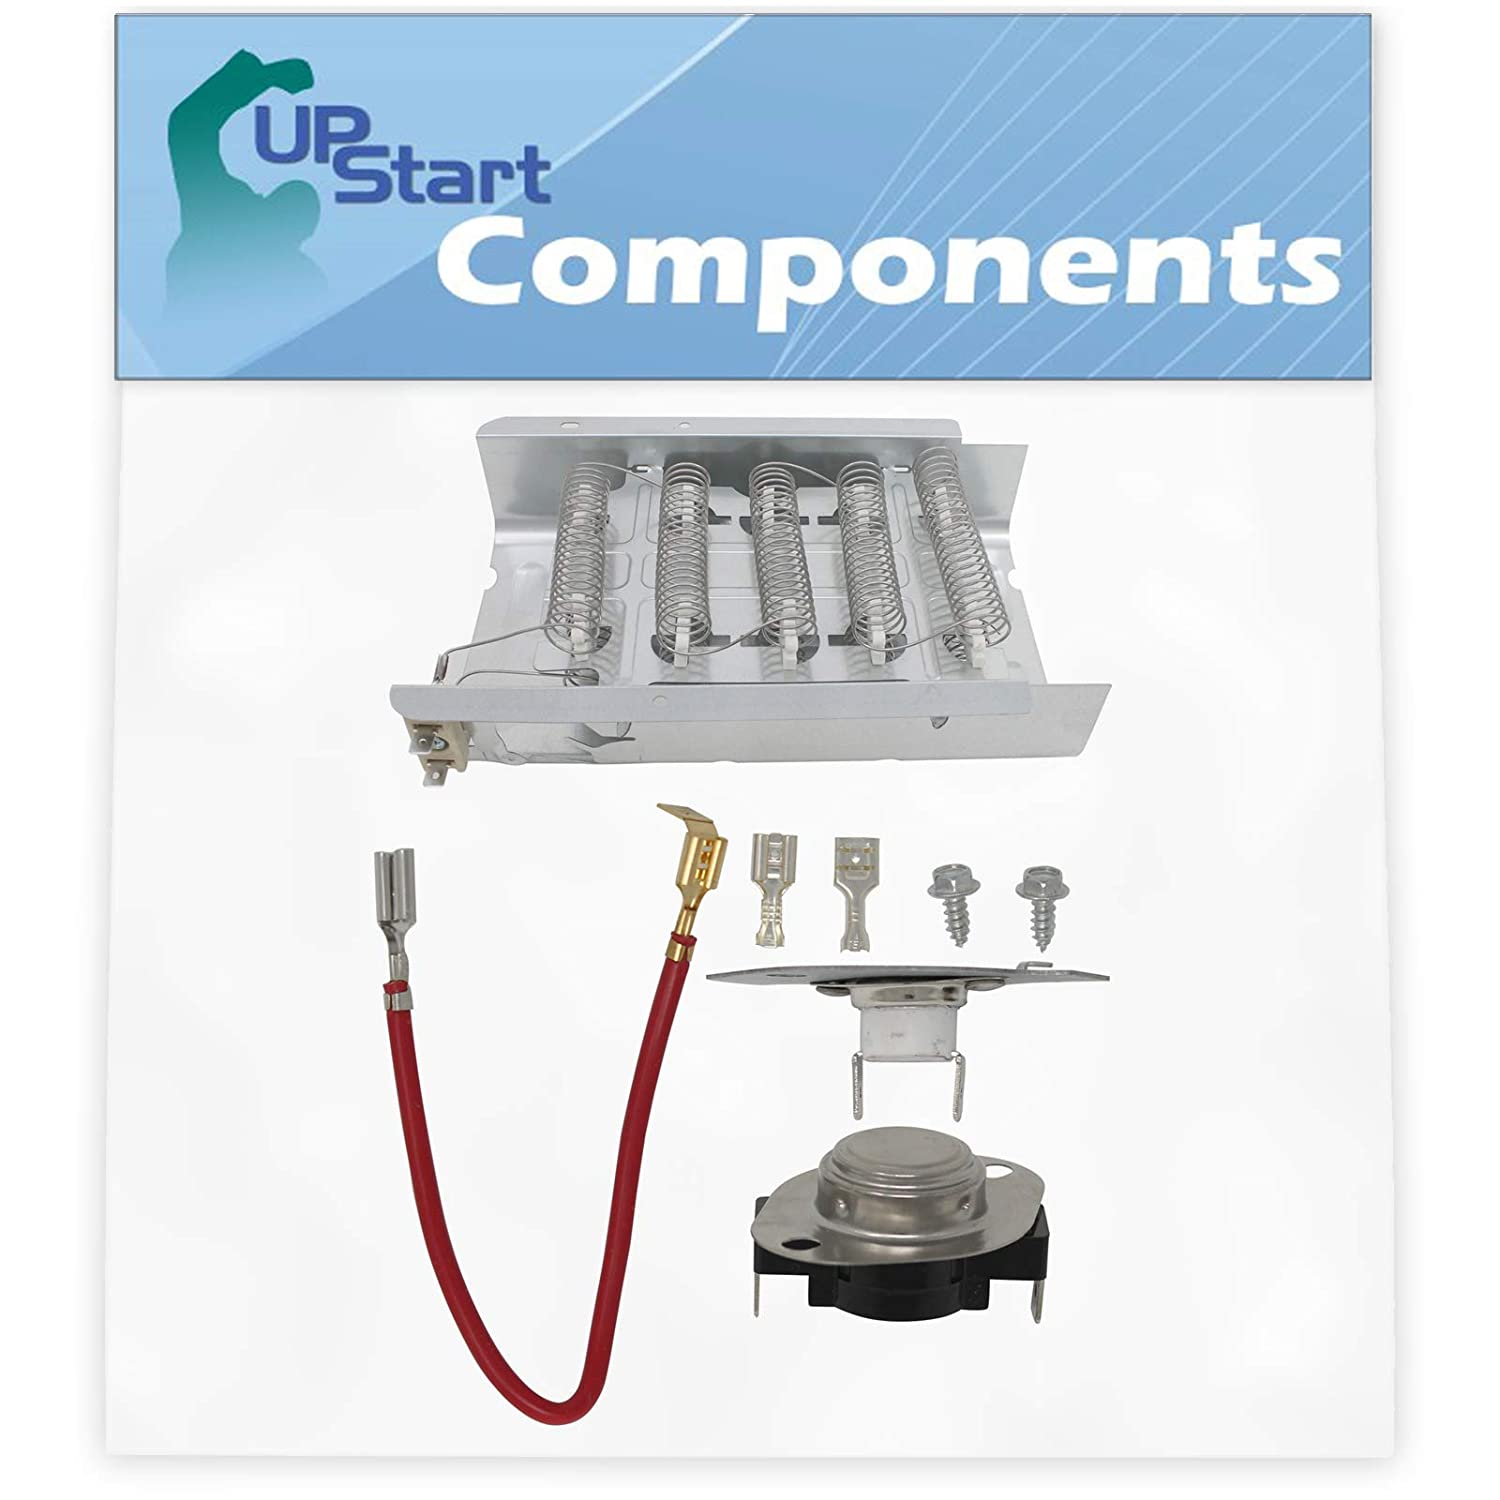 279838 And 279816 Dryer Heating Element and Thermostat Combo Pack Replacement for Estate TEDS740JQ1 Dryer - Compatible with 279838 & 279816 Heater Element & Thermal Cutoff - UpStart Components Brand